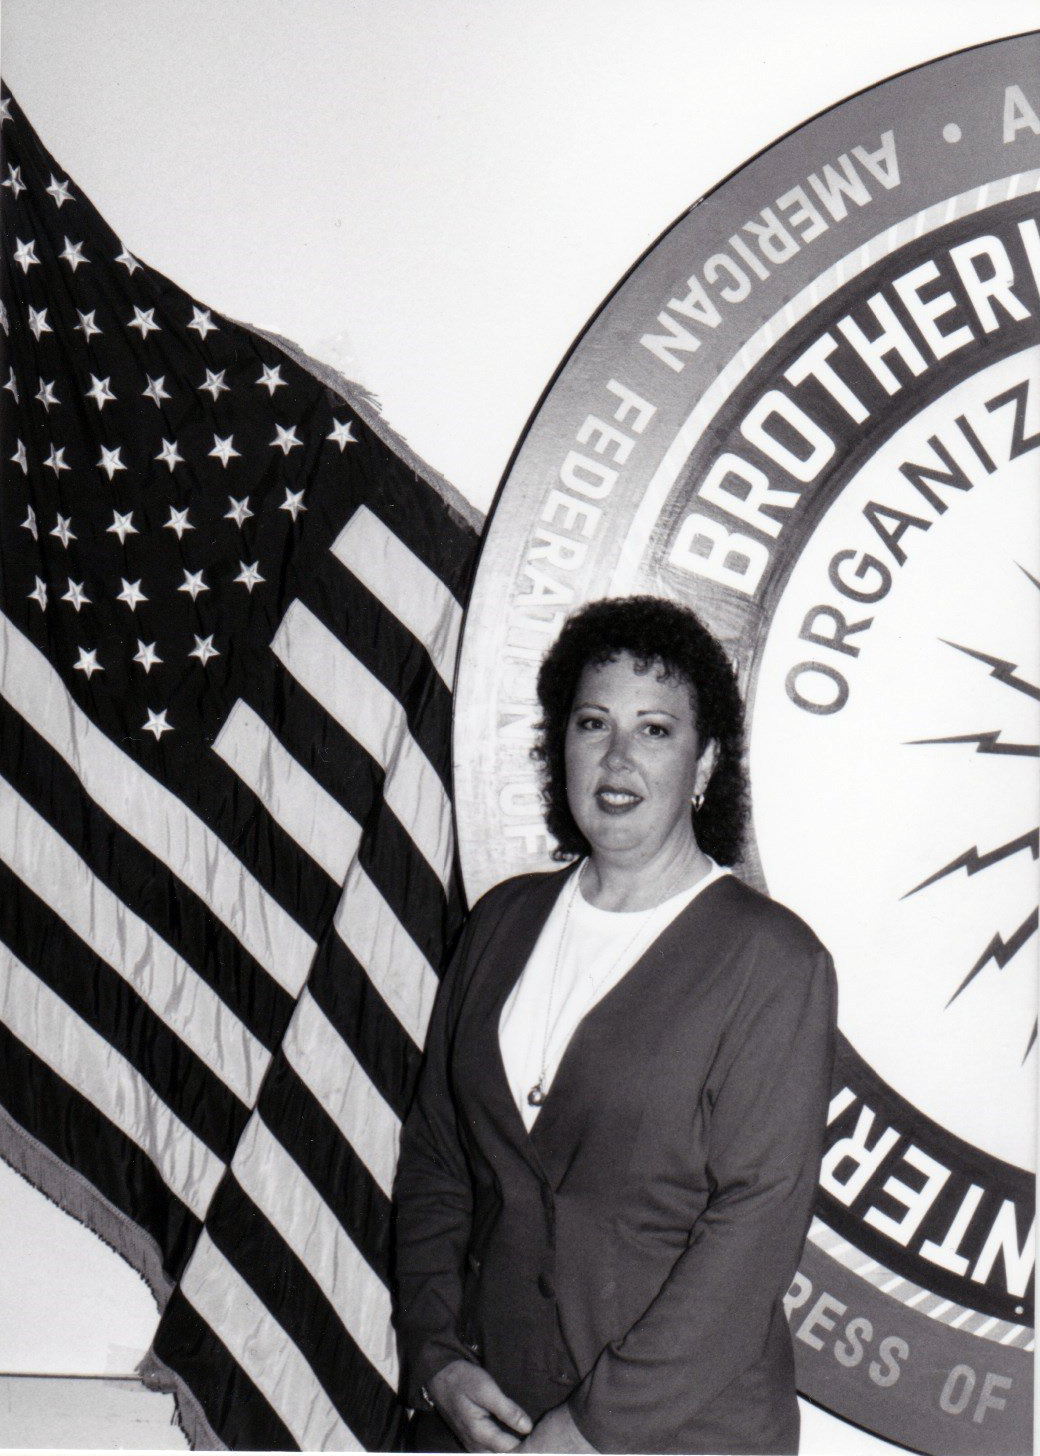 Debbie at the old Walnut Creek headquarters after being elected to the Executive Board